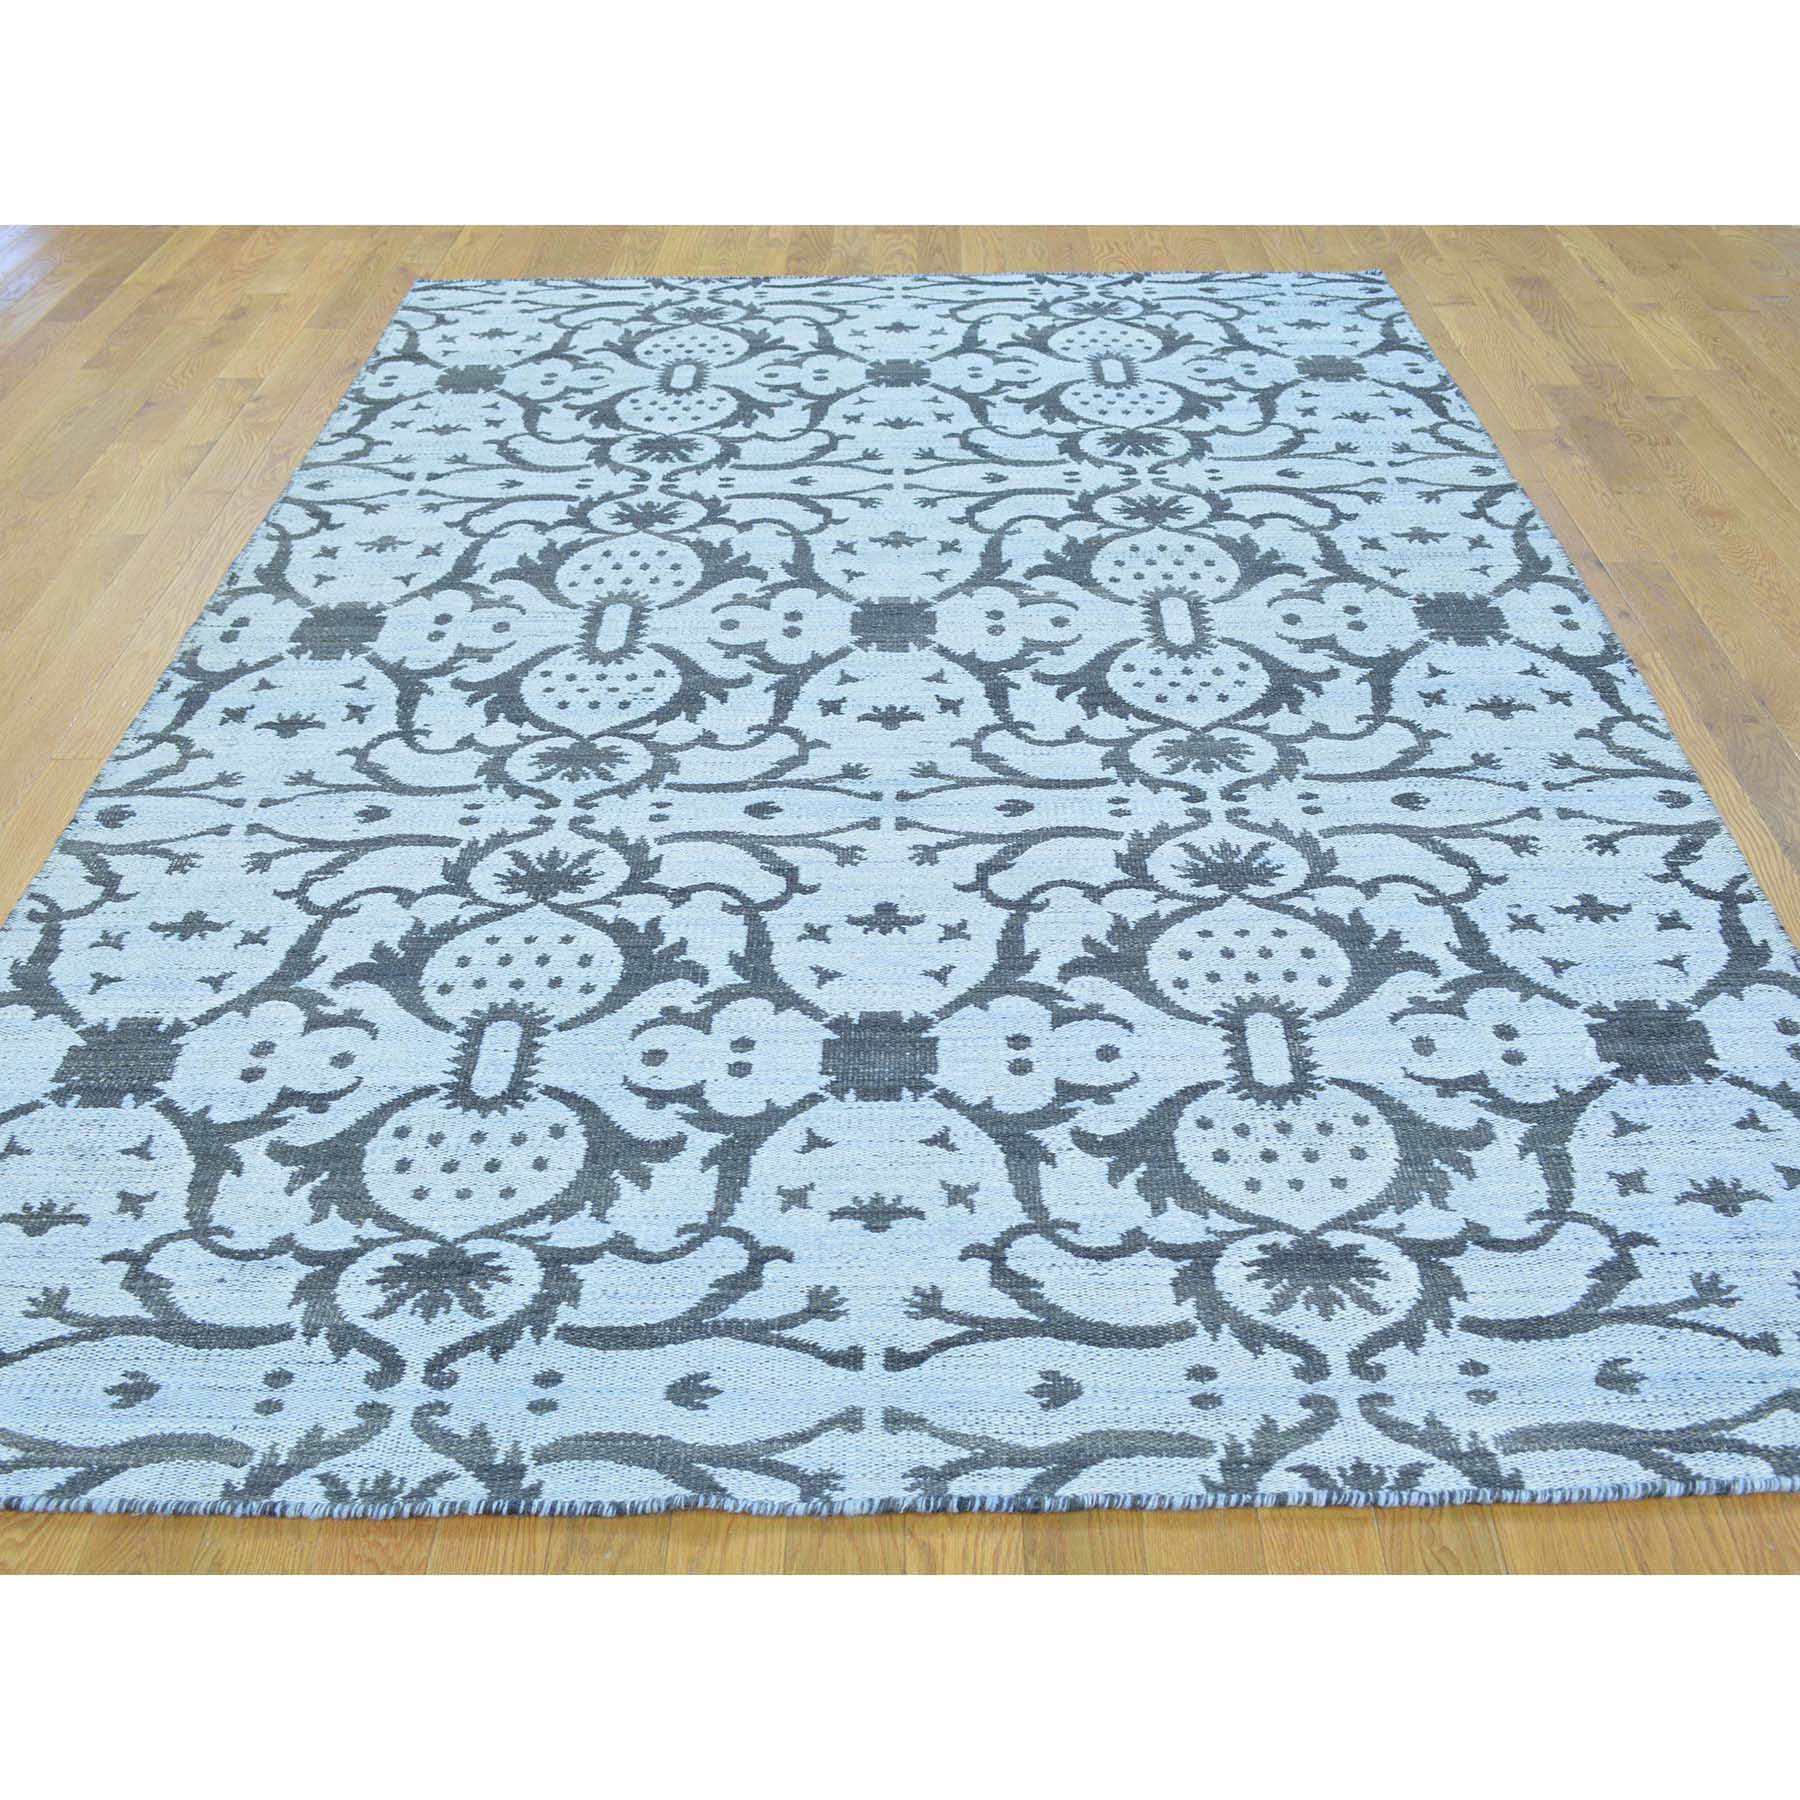 5-10 x8-8  Killim Reversible Oriental Hand Woven Flat Weave Rug